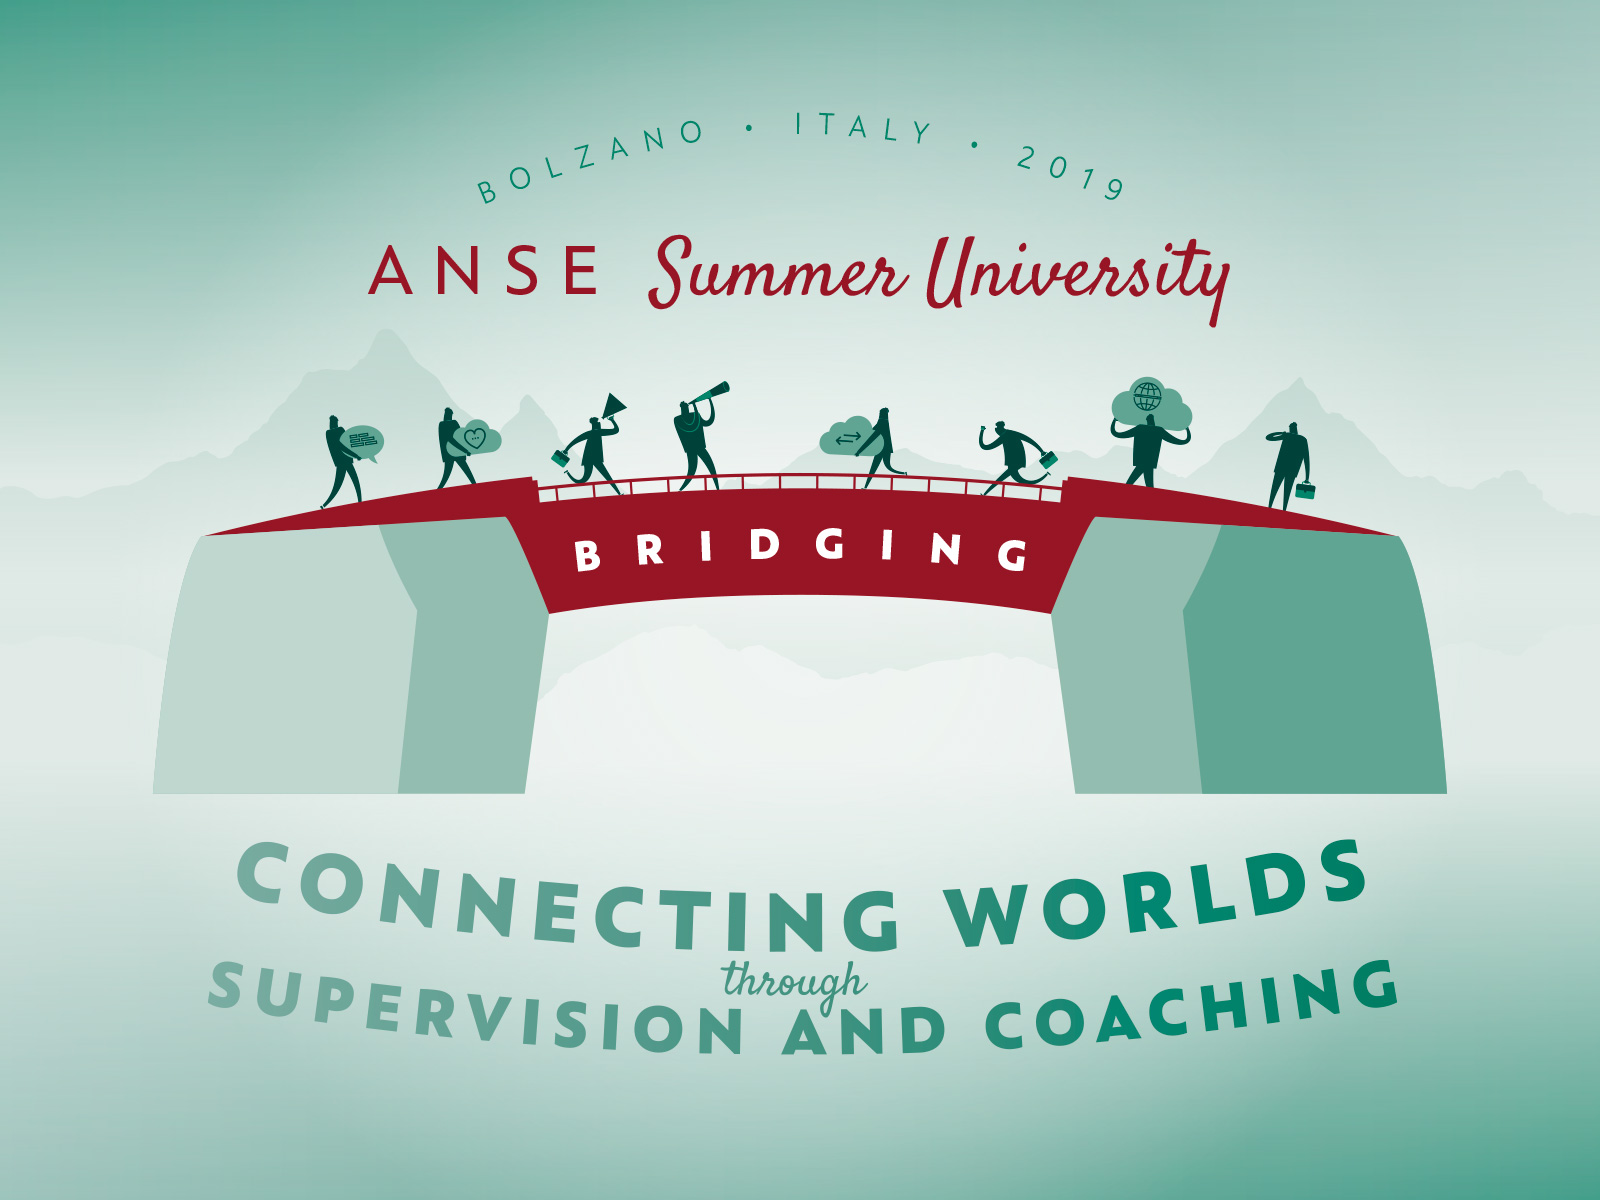 ANSE Summer University 2019 in Bolzano, Italy. Organised by BSC ASC Supervision and Coaching. Illustration Design by adpassion, Waldemar Kerschbaumer.